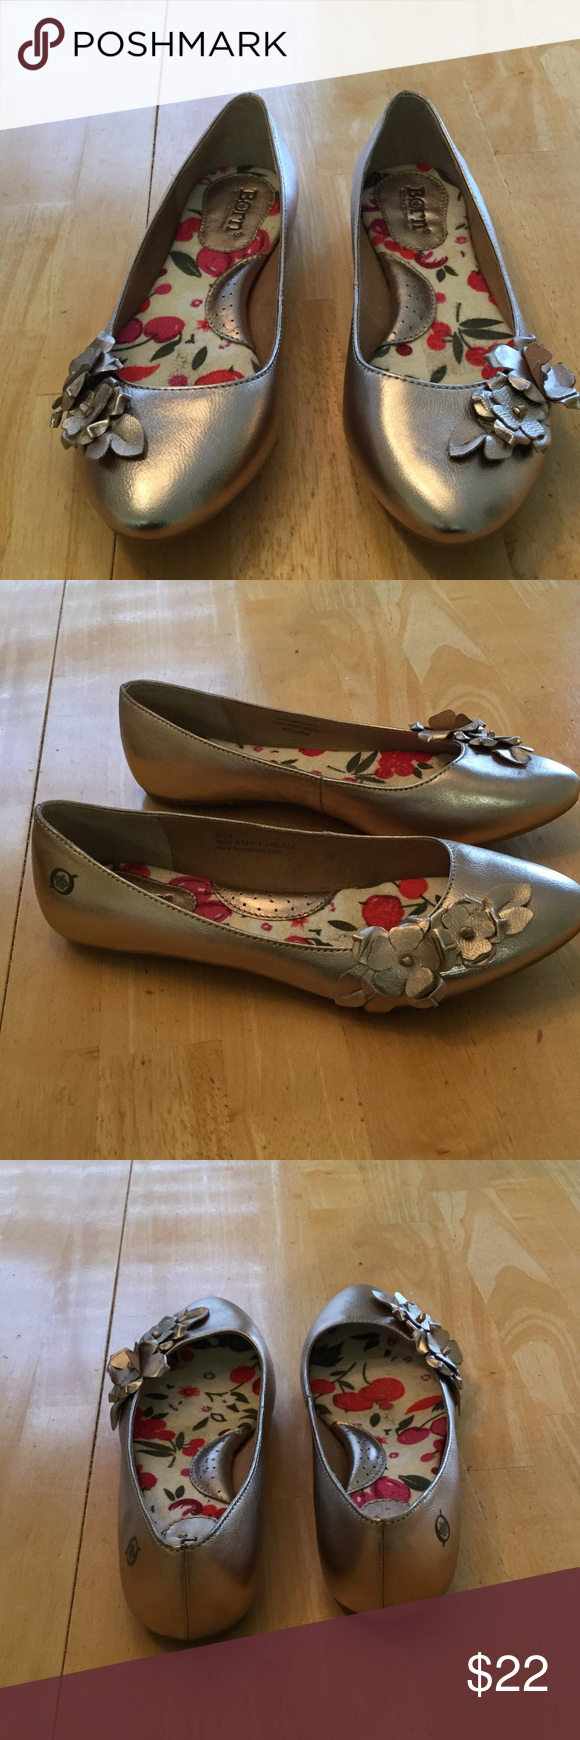 Born shoes Gold flats good condition Shoes Flats & Loafers